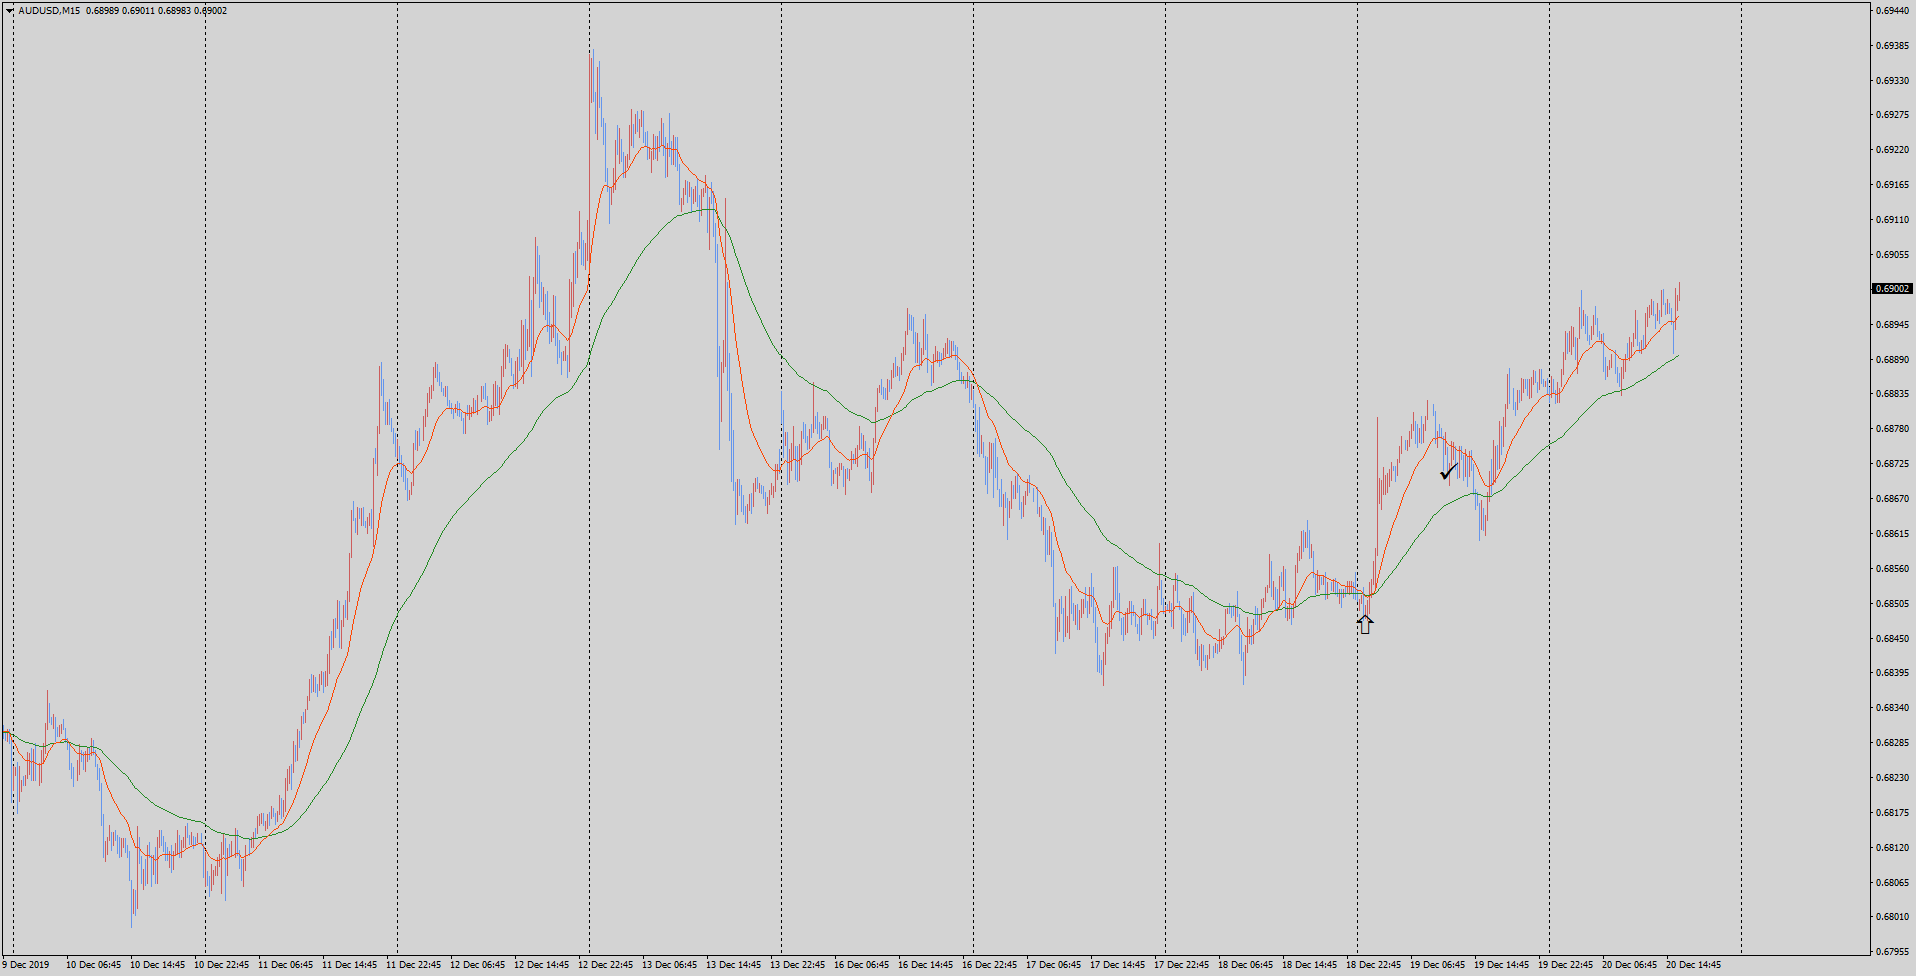 19-12-20-audusd-m15-tradexfin-limited.png